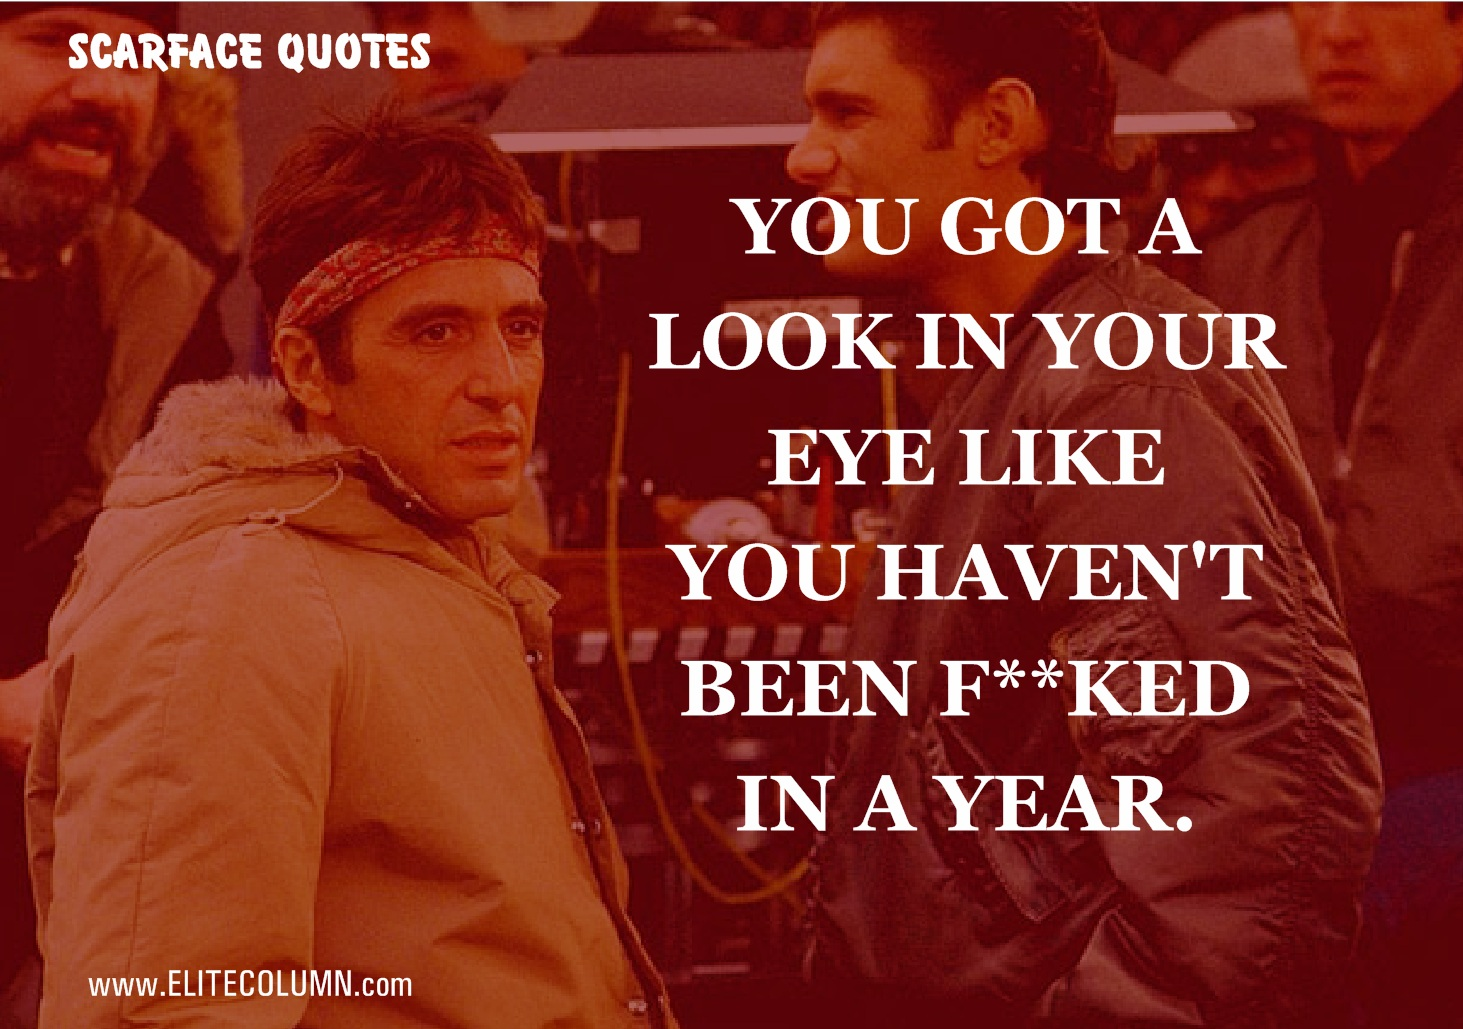 Scarface Quotes (11)